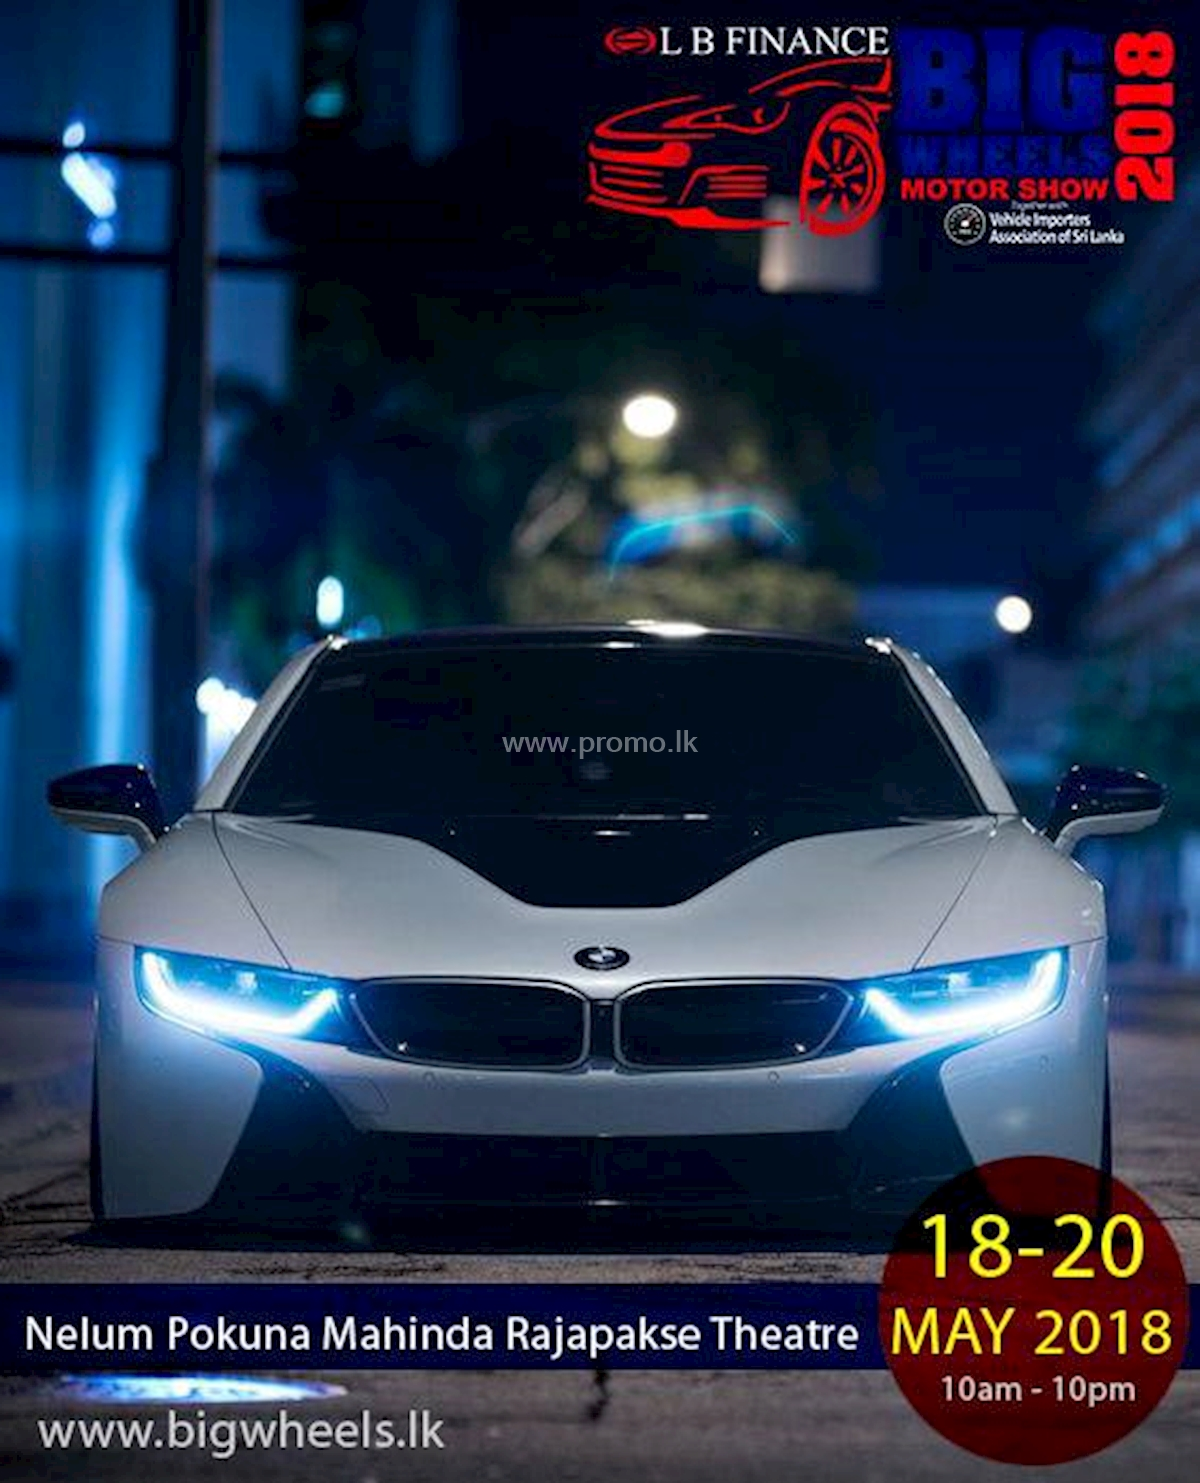 LB Big Wheels Motor Show 2018 at Nelum Pokuna Mahinda Rajapaksa Theatre